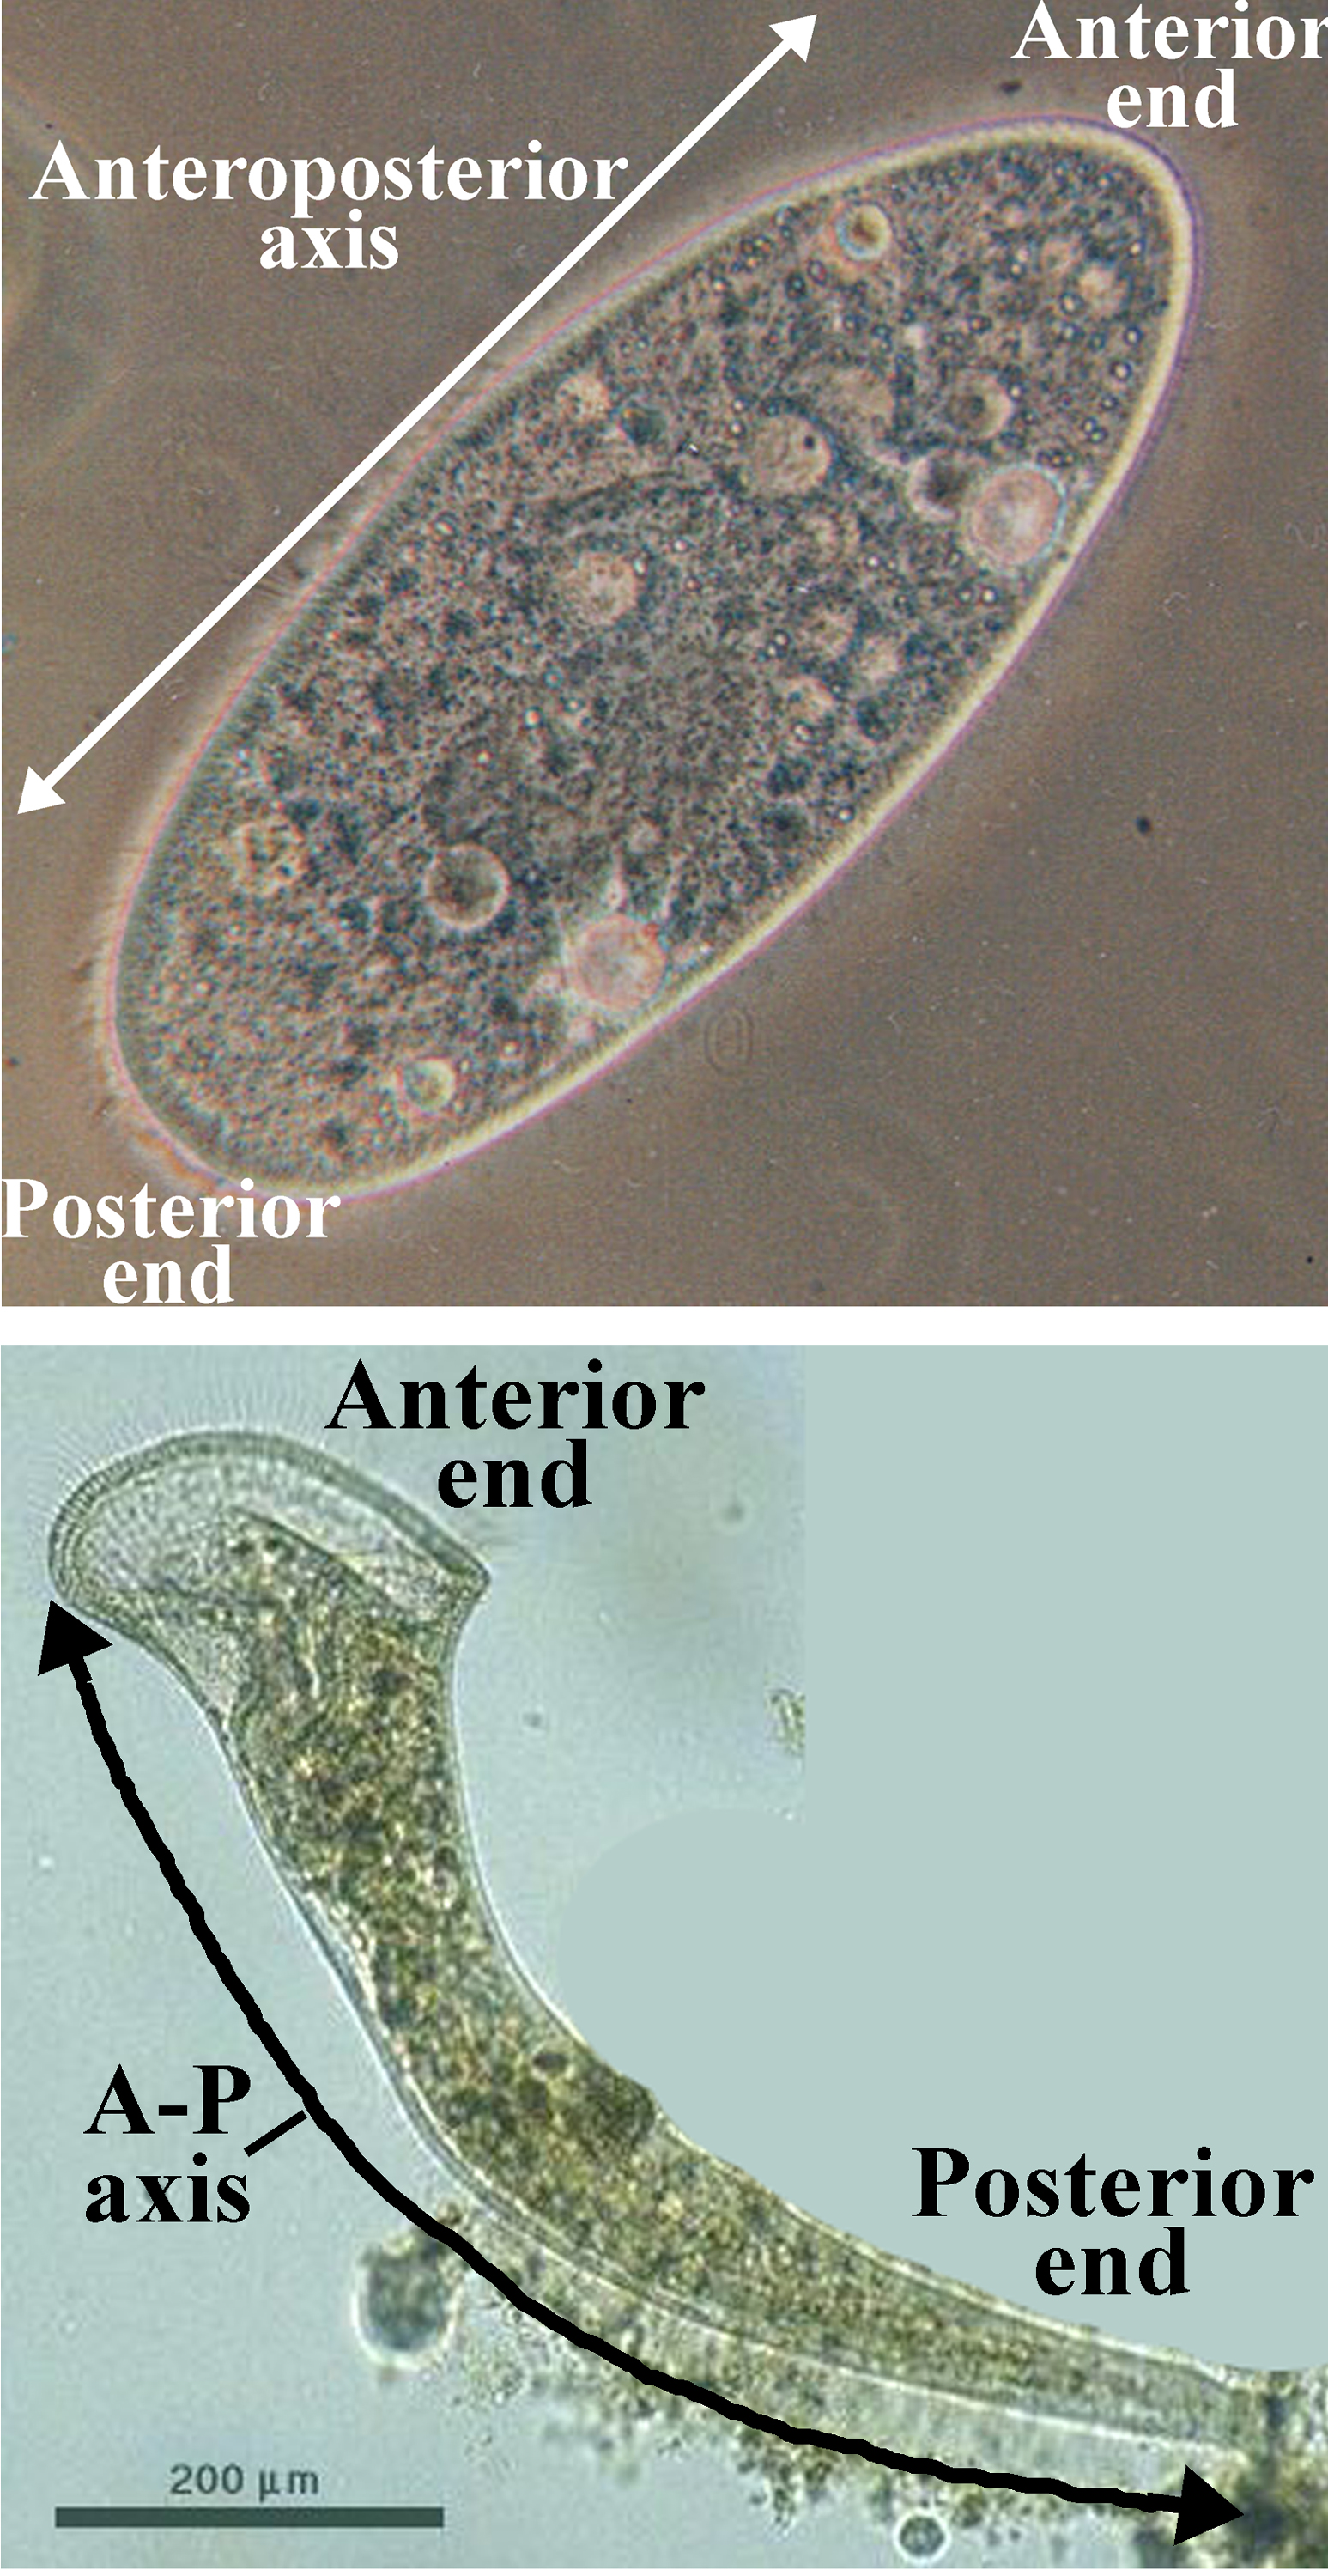 Figure 7: Organisms where the ends of the long axis are distinct. (Paramecium caudatum, above, and Stentor roeseli, below.)